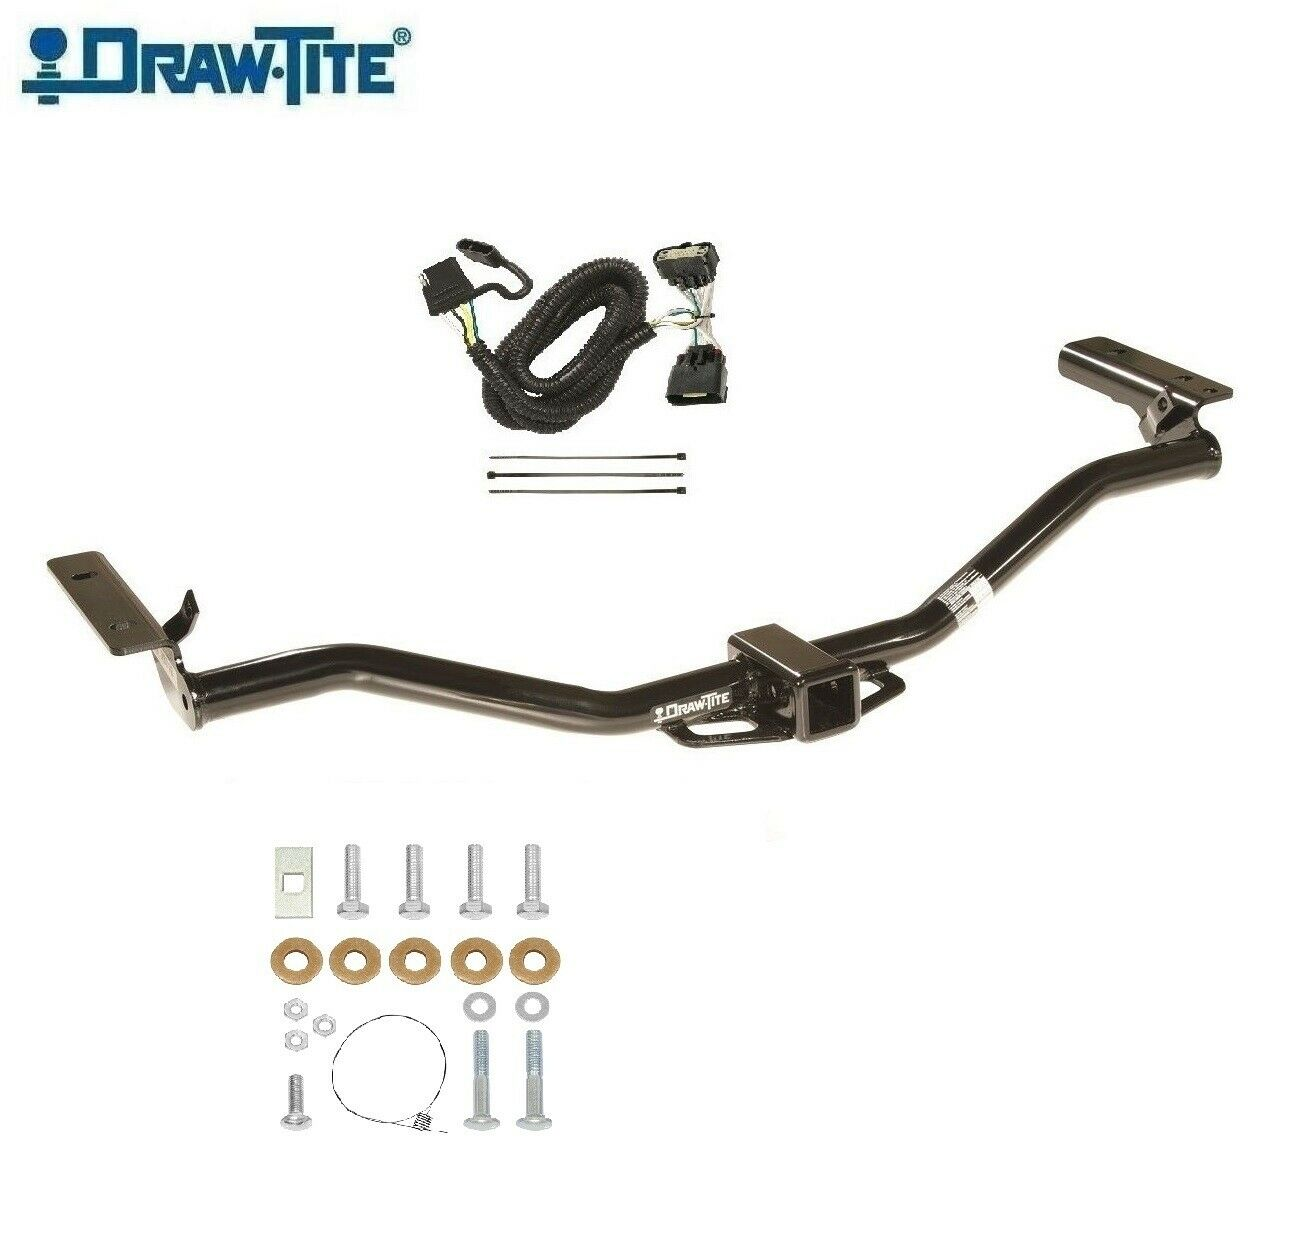 "Fits 2011-2018 Ford Explorer, Class 3 Trailer Hitch & Wiring, 2"" 1 of 4Only  1 available See More"